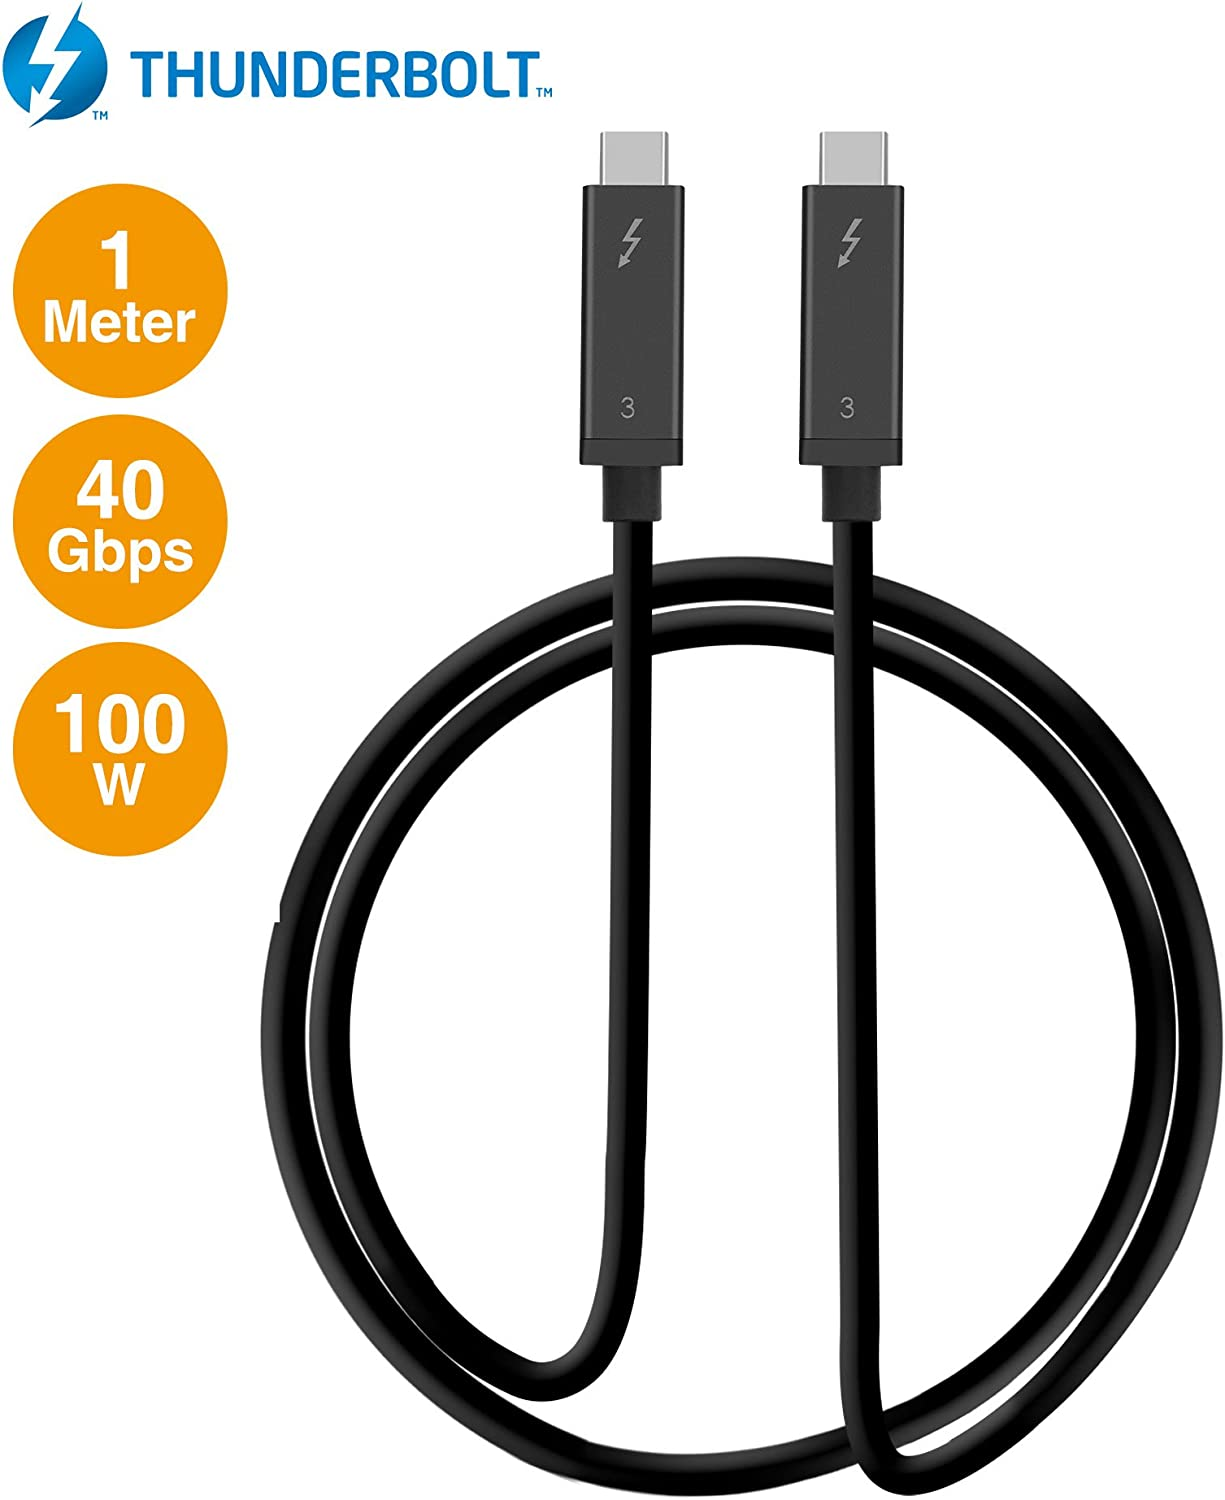 SIIG Thunderbolt 3 Certified, 40Gbps Thunderbolt 3 Active Cable 1M - 100W Charging/5A/20V - Daisy Chain up to 6 Devices - USB Type C with Thunderbolt Logo Compatible - 3.3 Ft